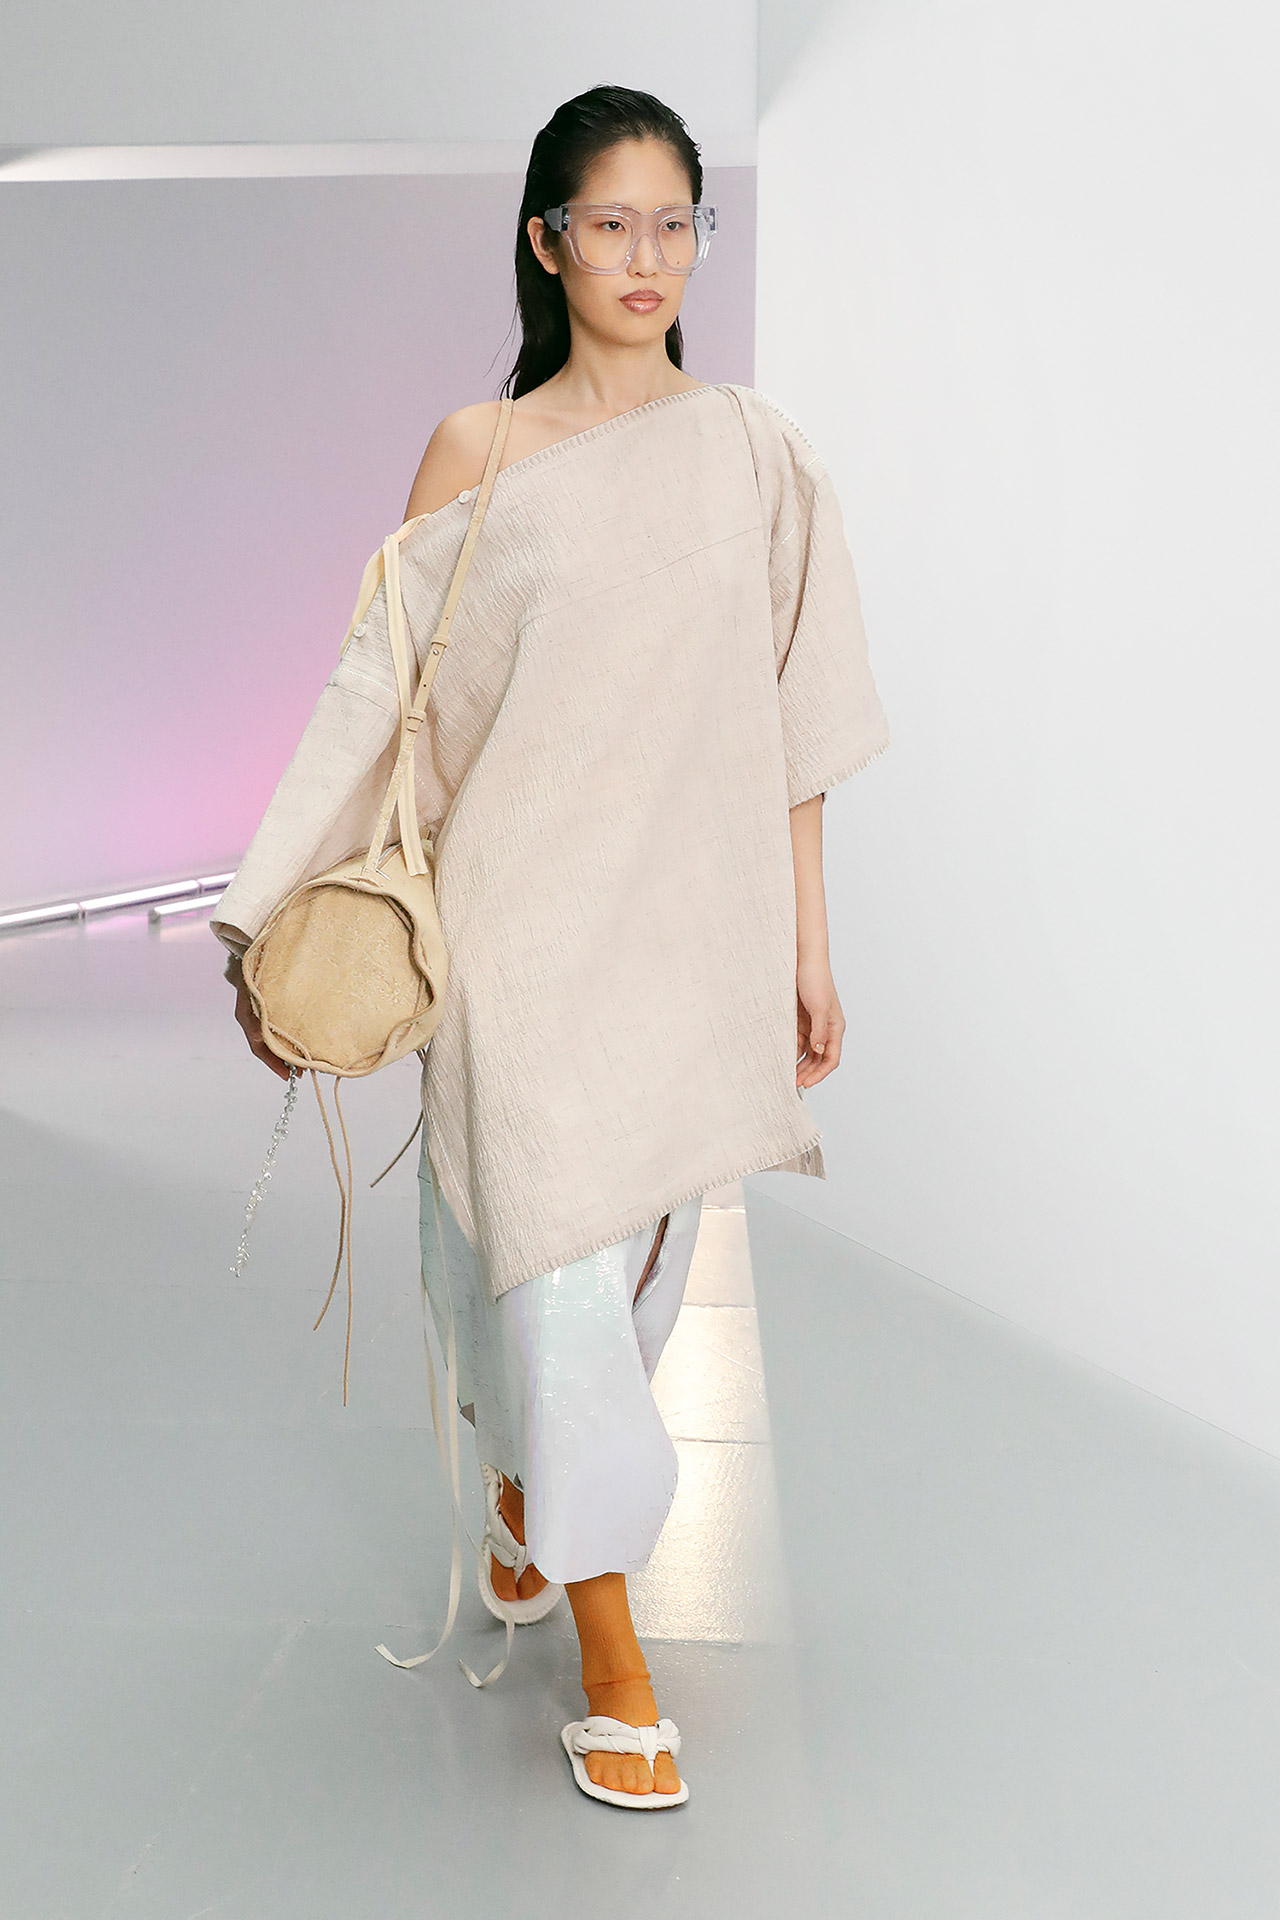 Look Fall/Winter 2020, image 28